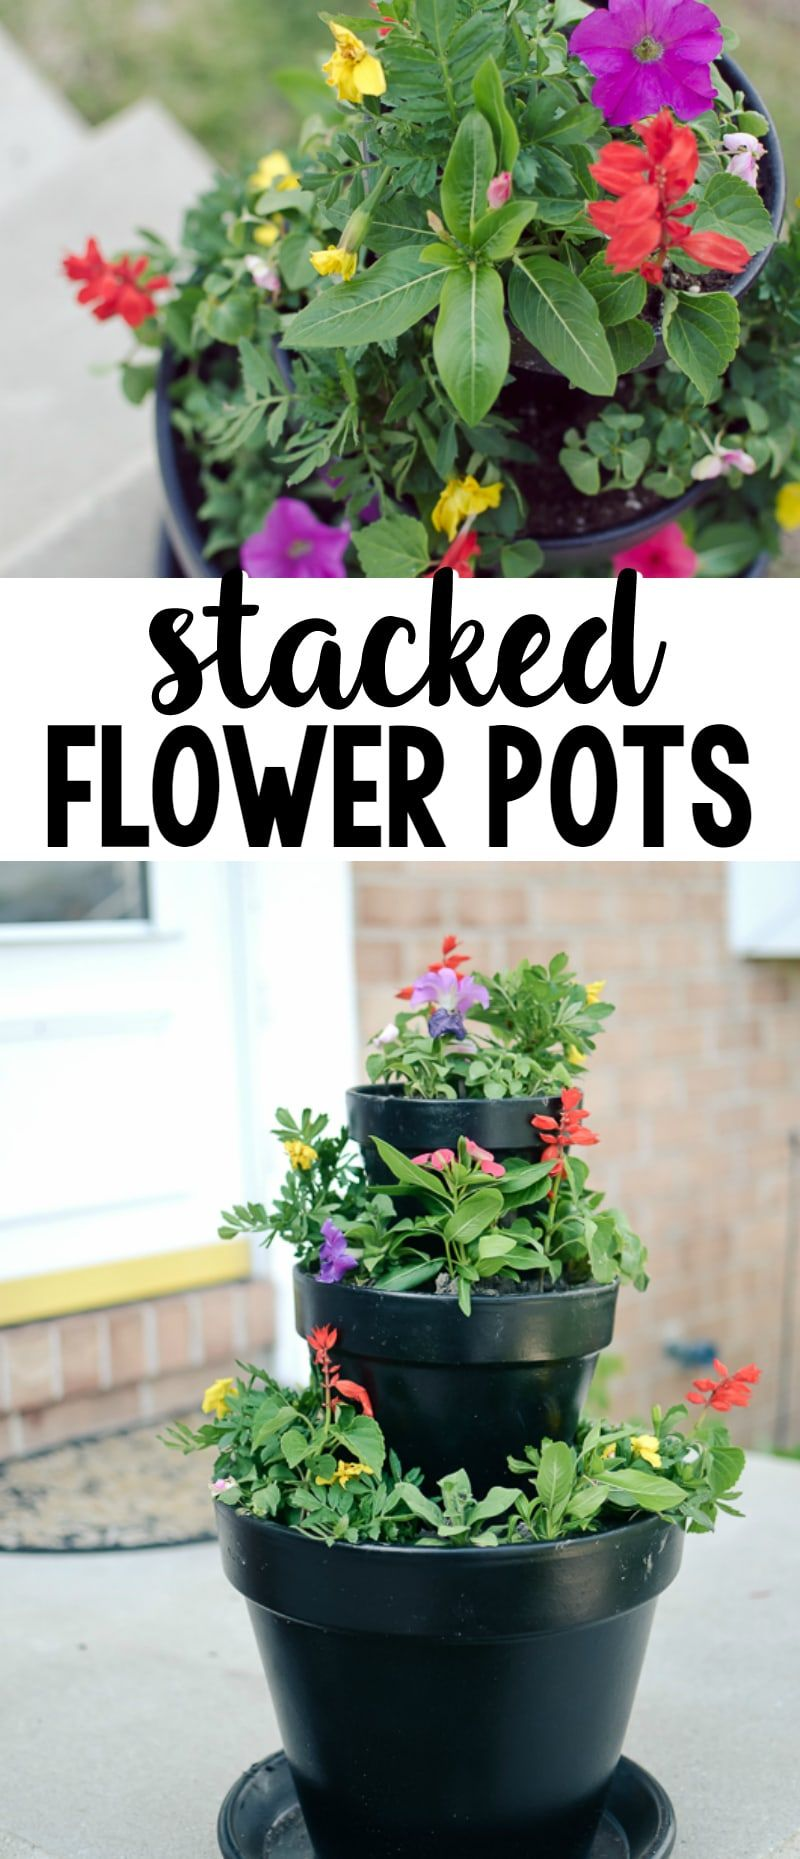 DIY Stacked Flower Pots A Grande Life Stacked flower